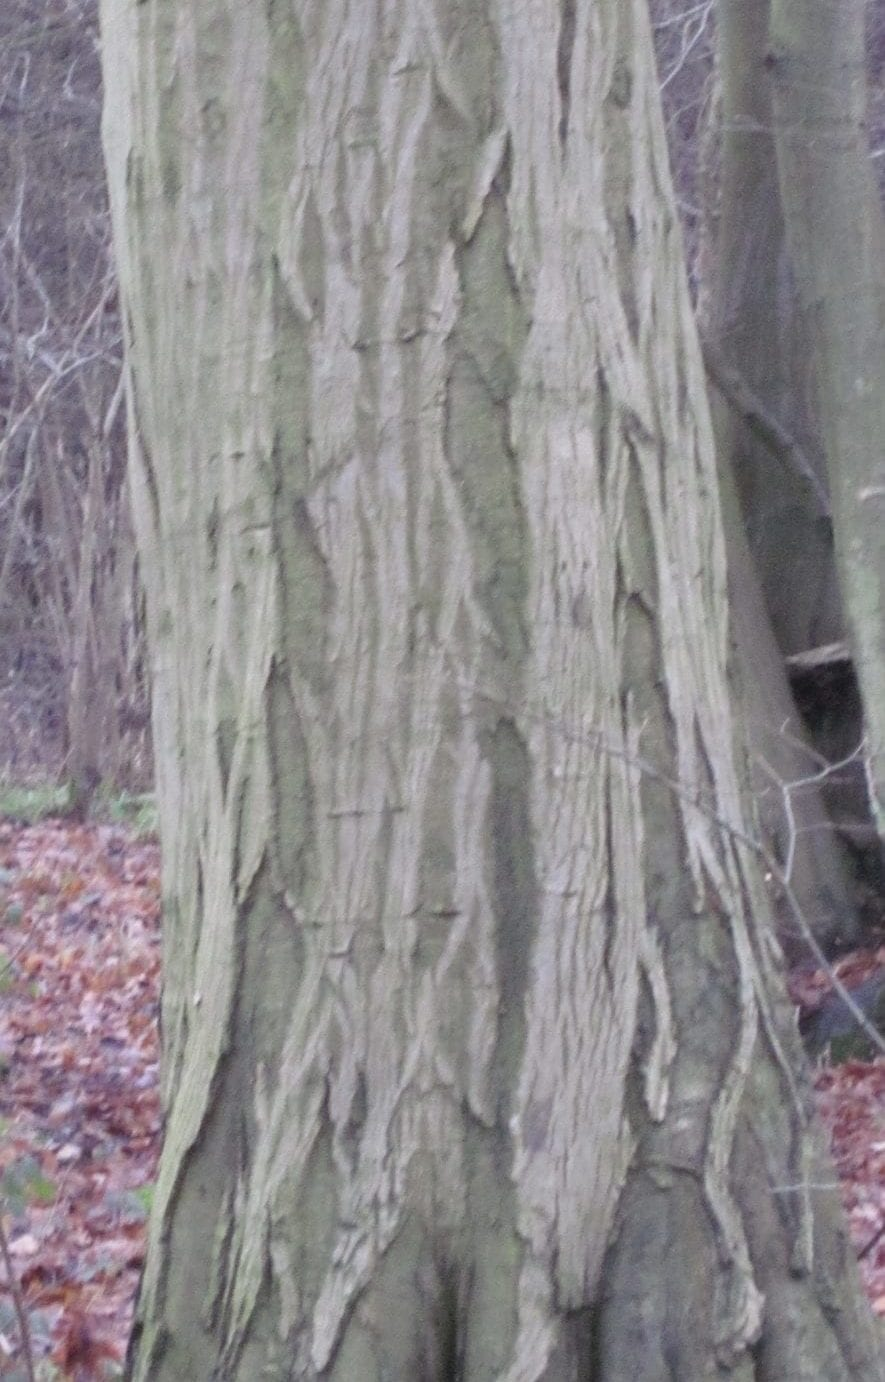 common hornbeam bark